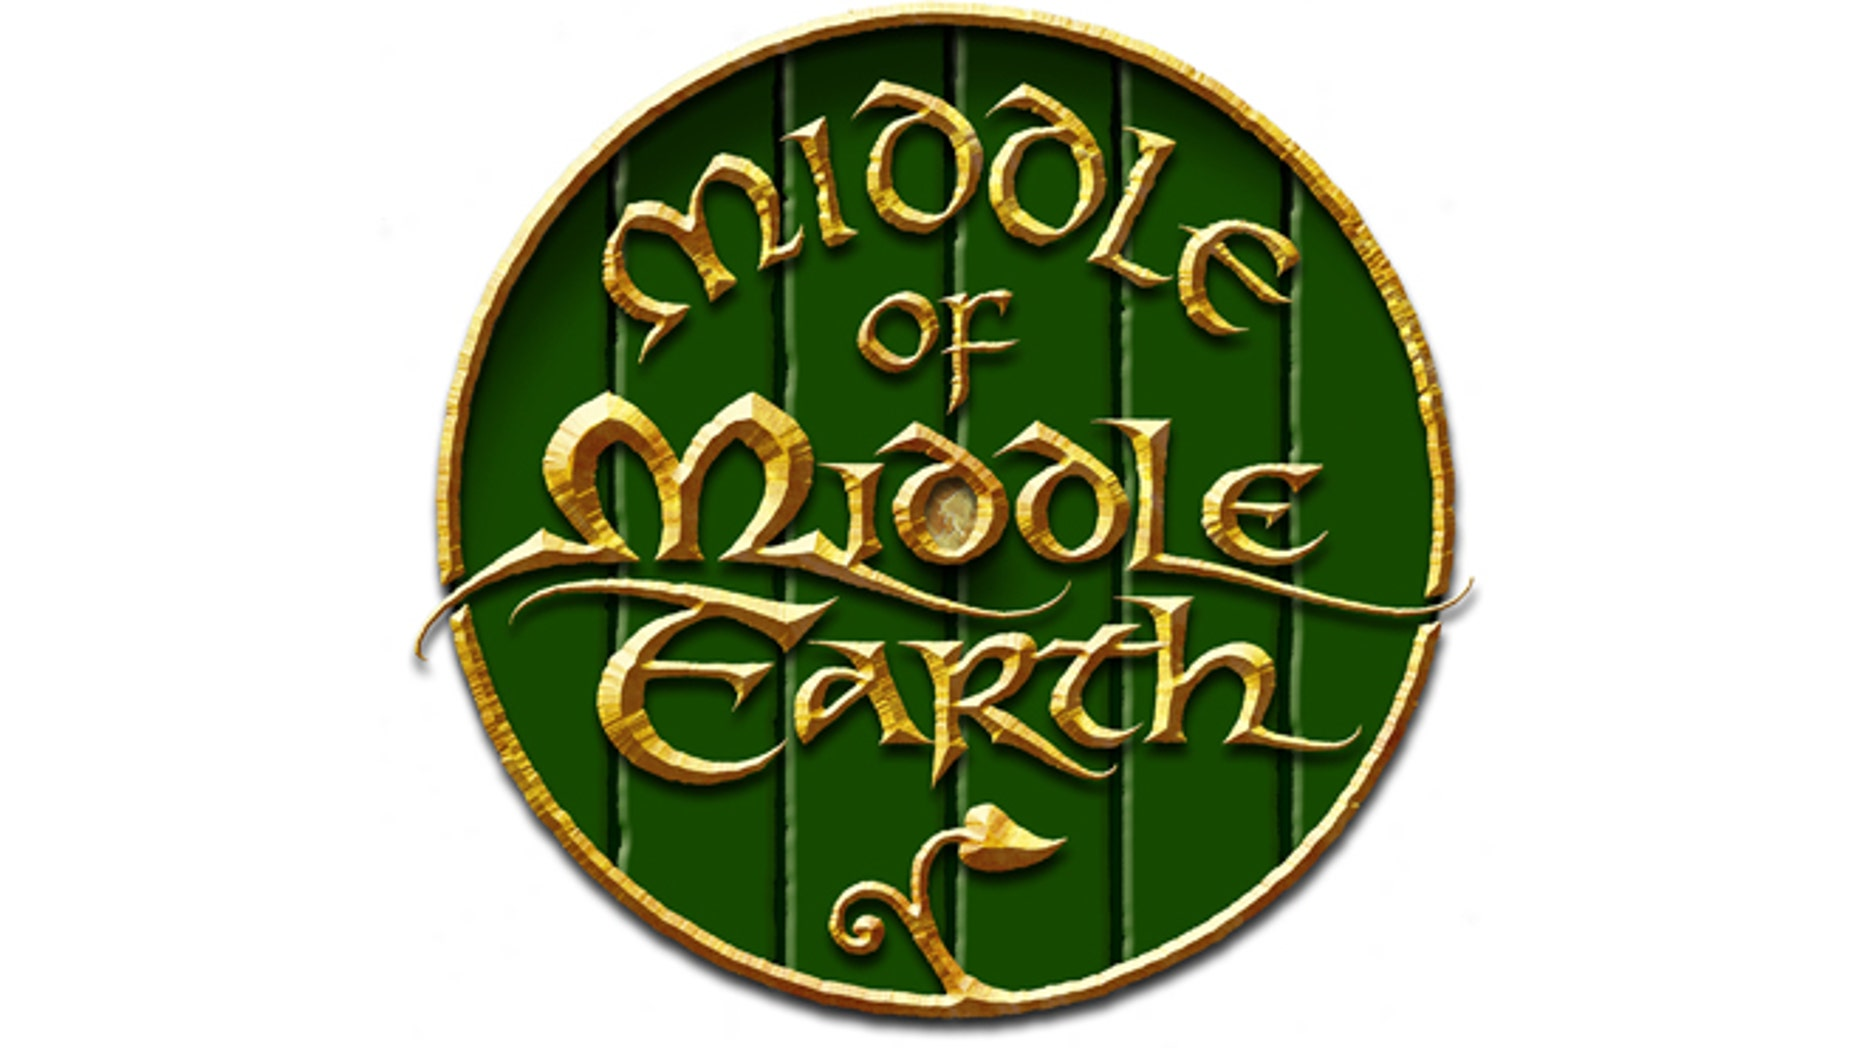 """A logo designed by Daniel Reeve, an artist who worked on the cartography and calligraphy for """"The Hobbit"""" trilogy."""